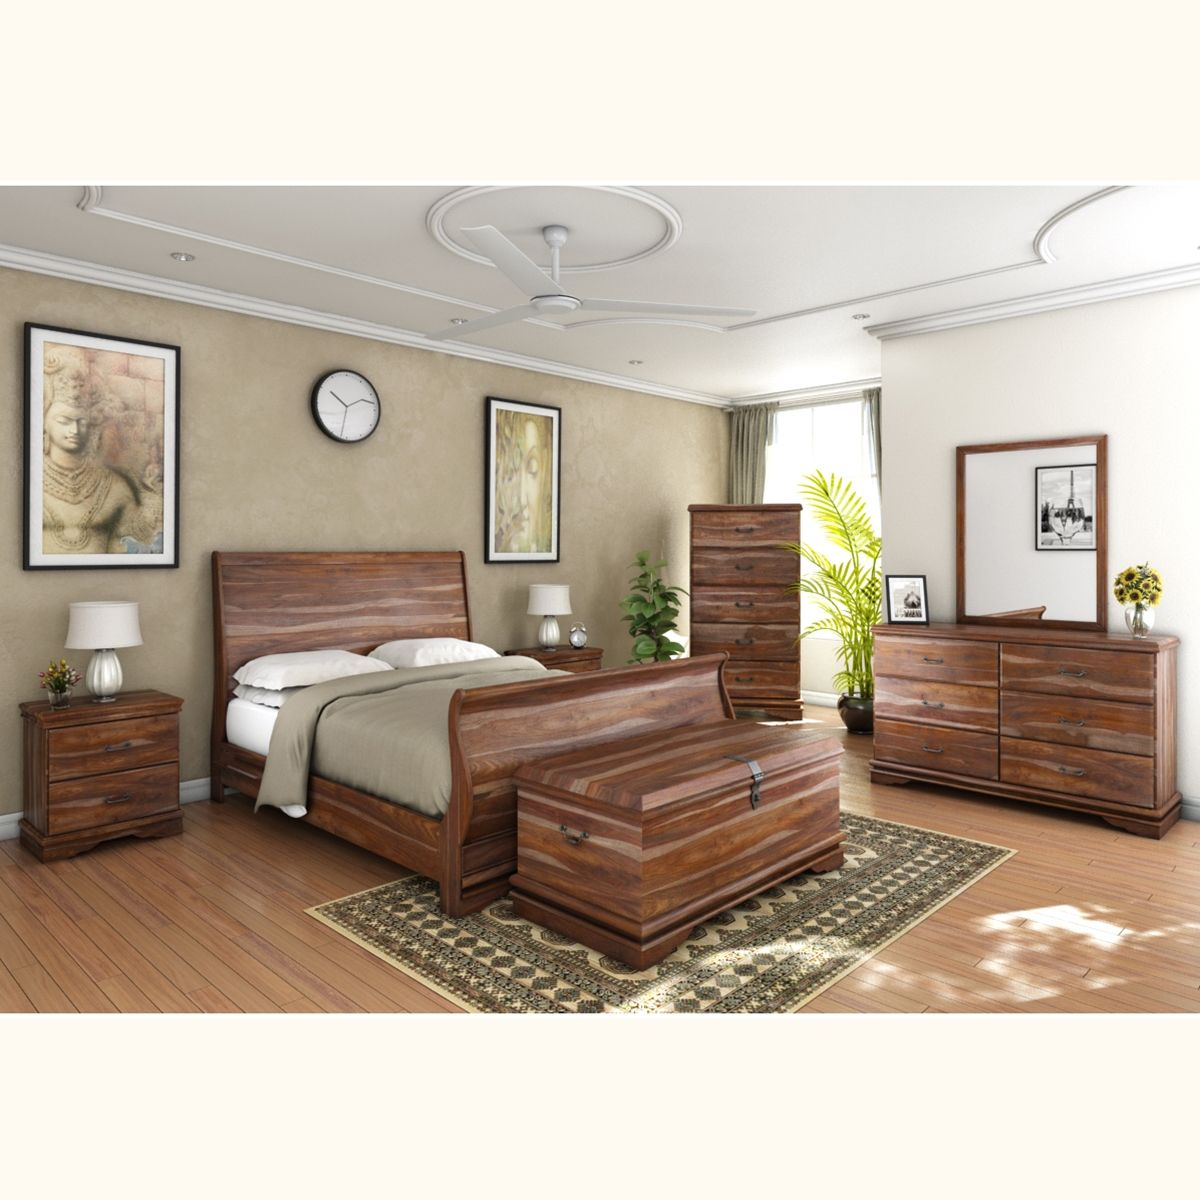 Sleigh back piece bedroom collection solid wood platform bed